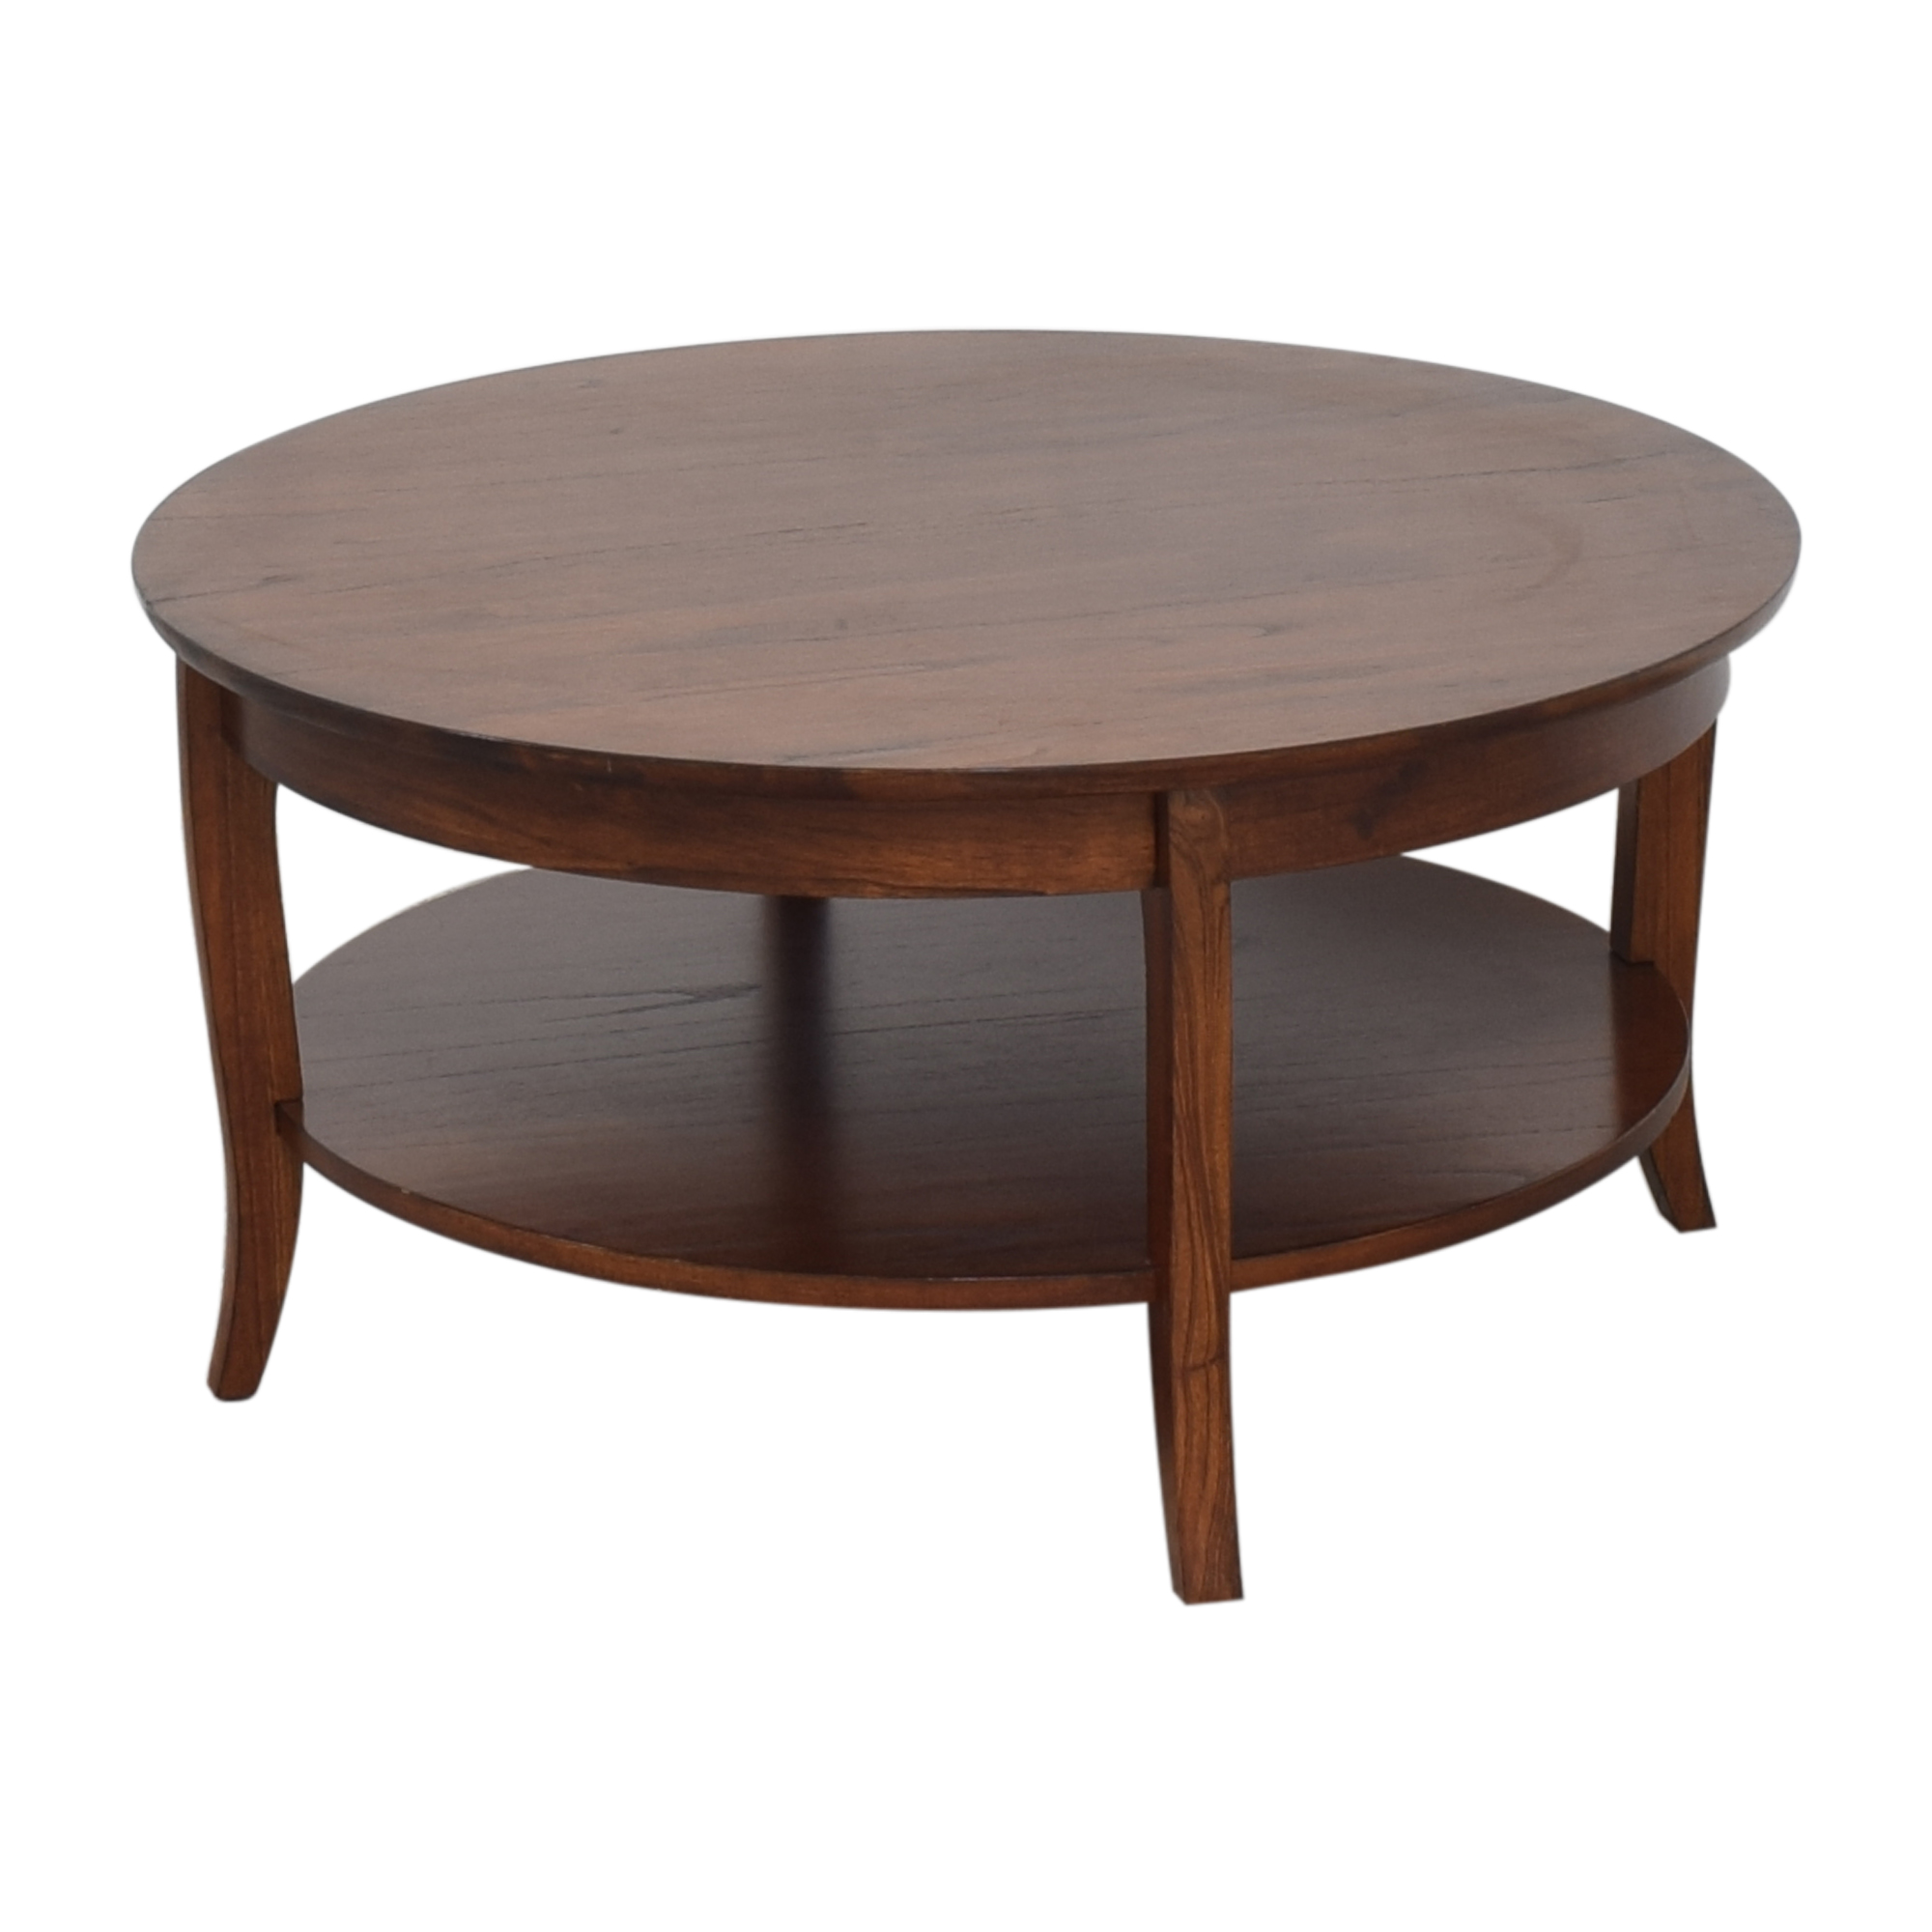 Macy's Macy's Round Coffee Table  price